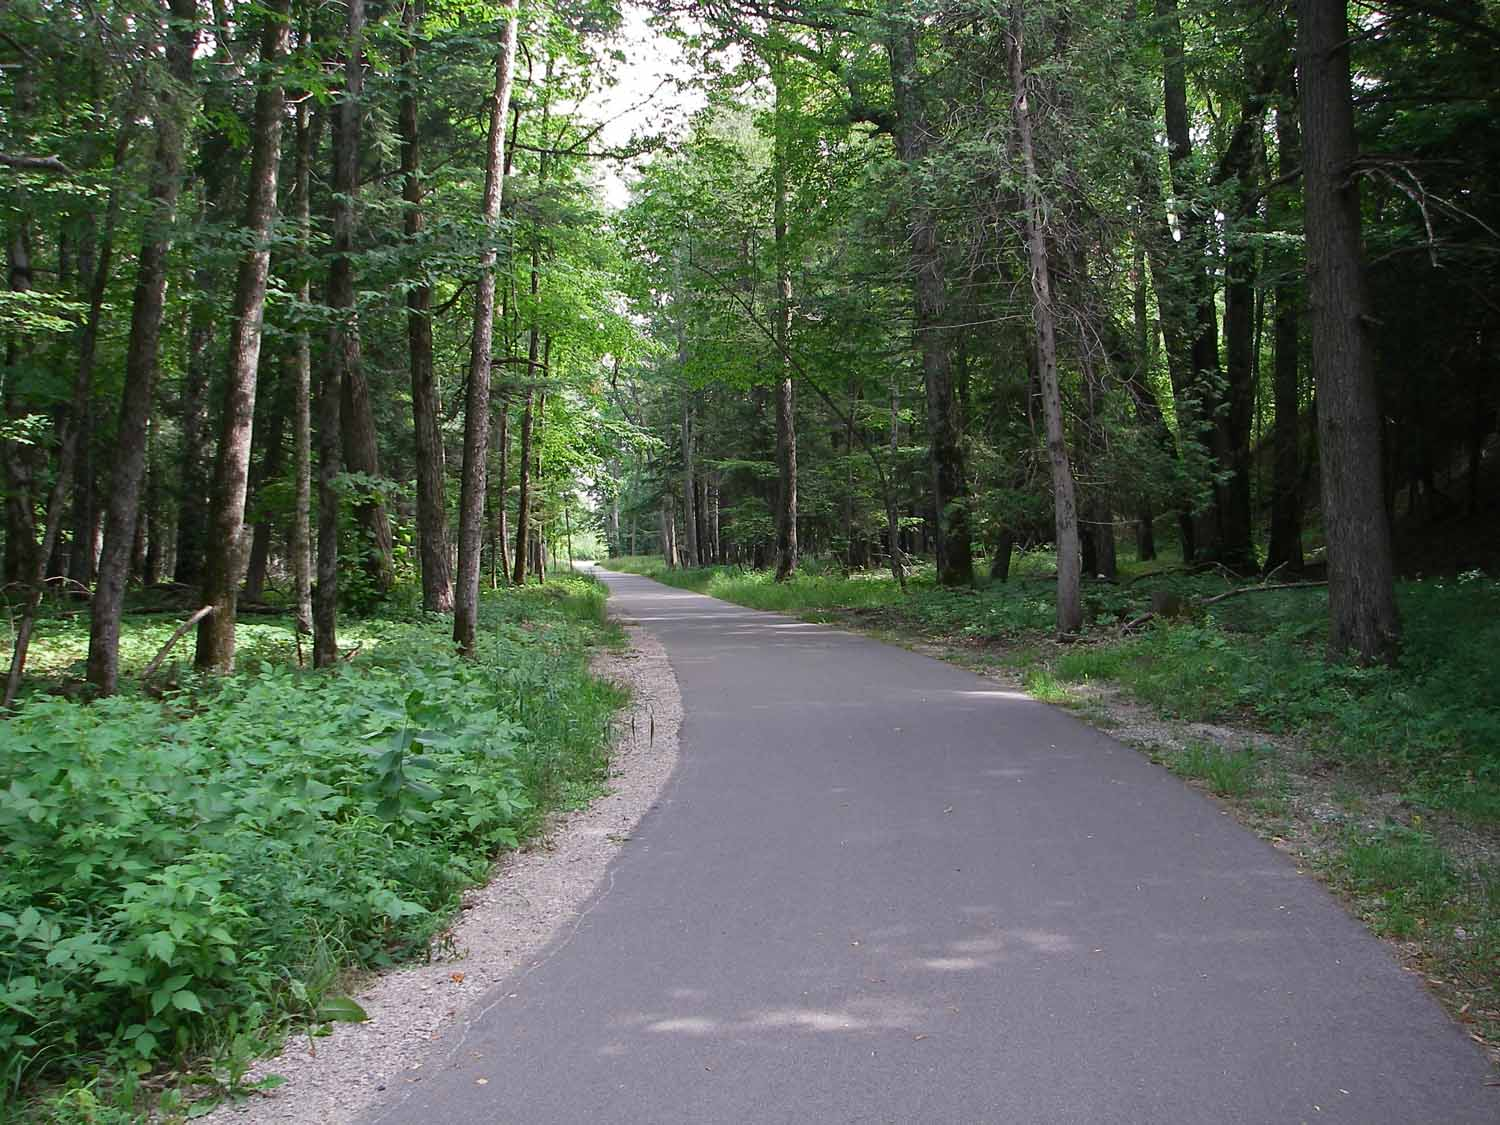 Next section of the Heritage Trail at Sleeping Bear Park